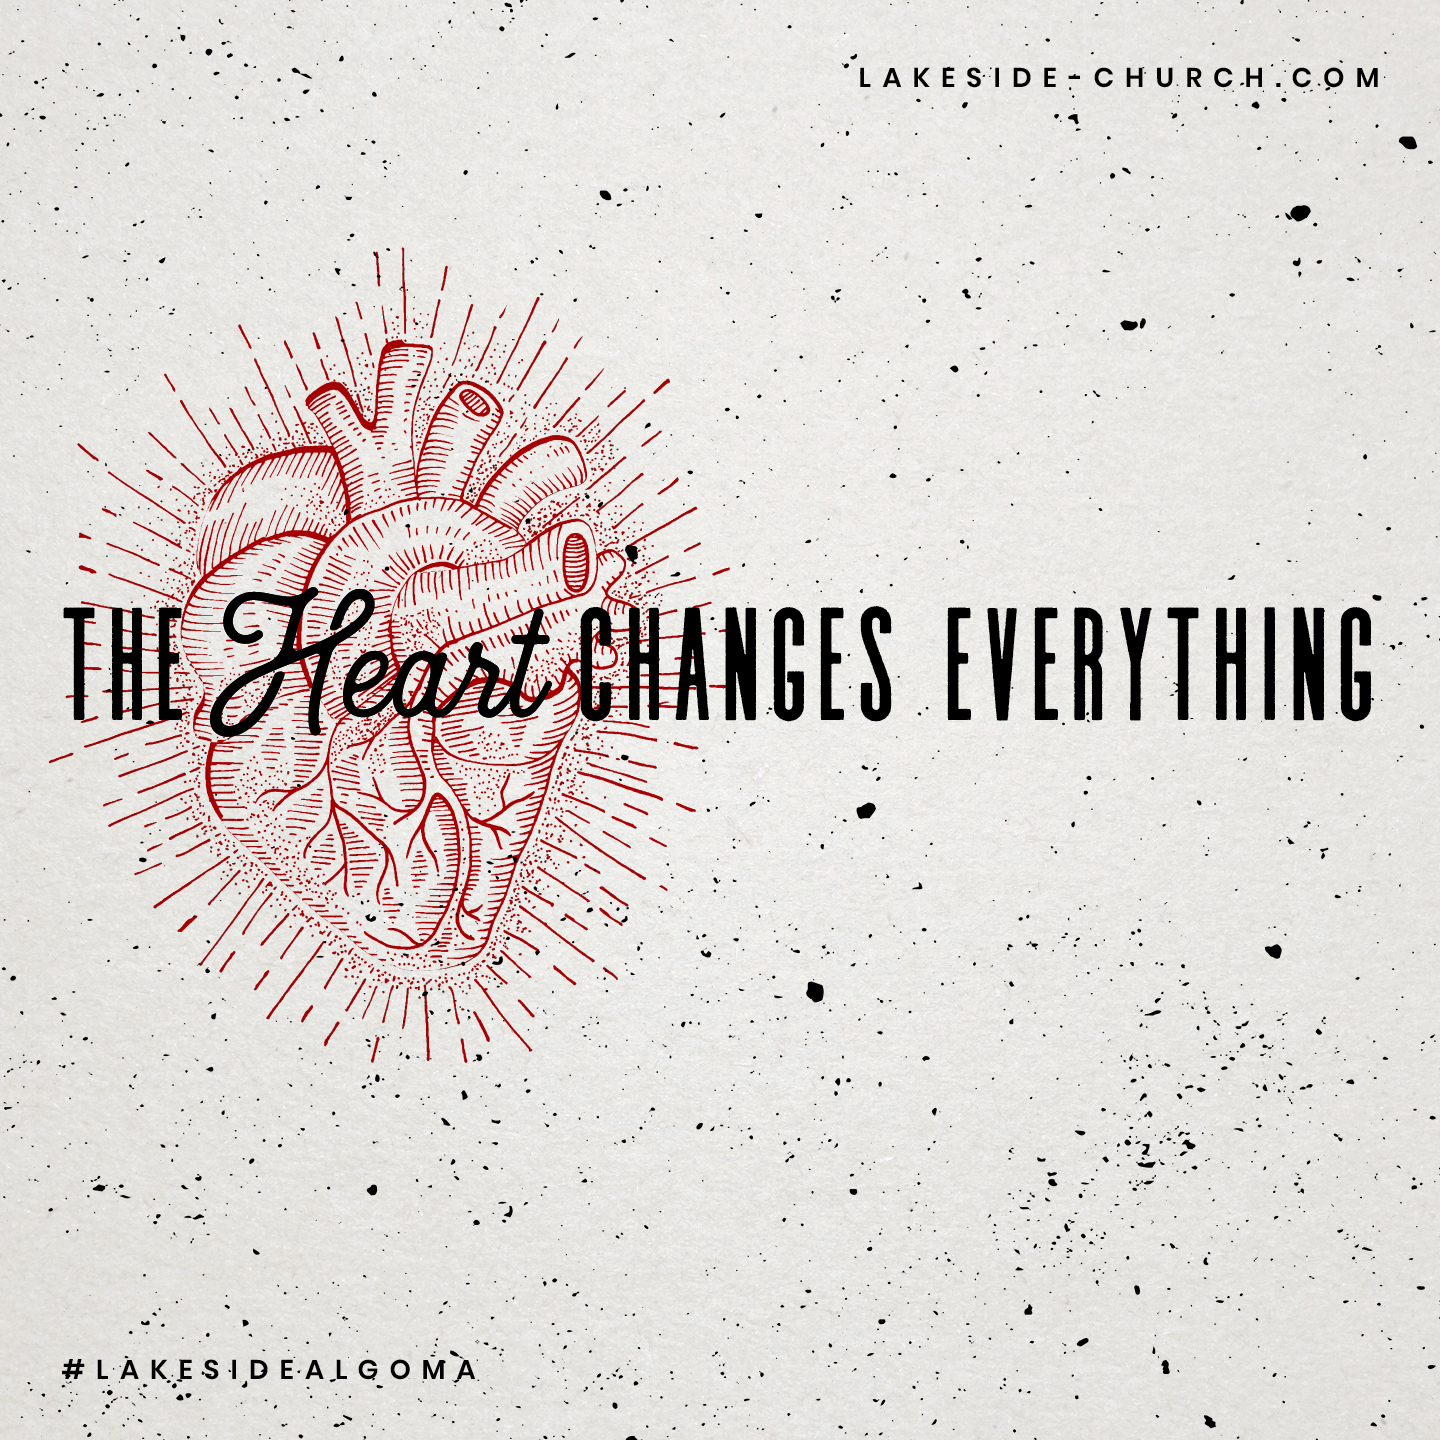 THE HEART CHANGES EVERYTHING